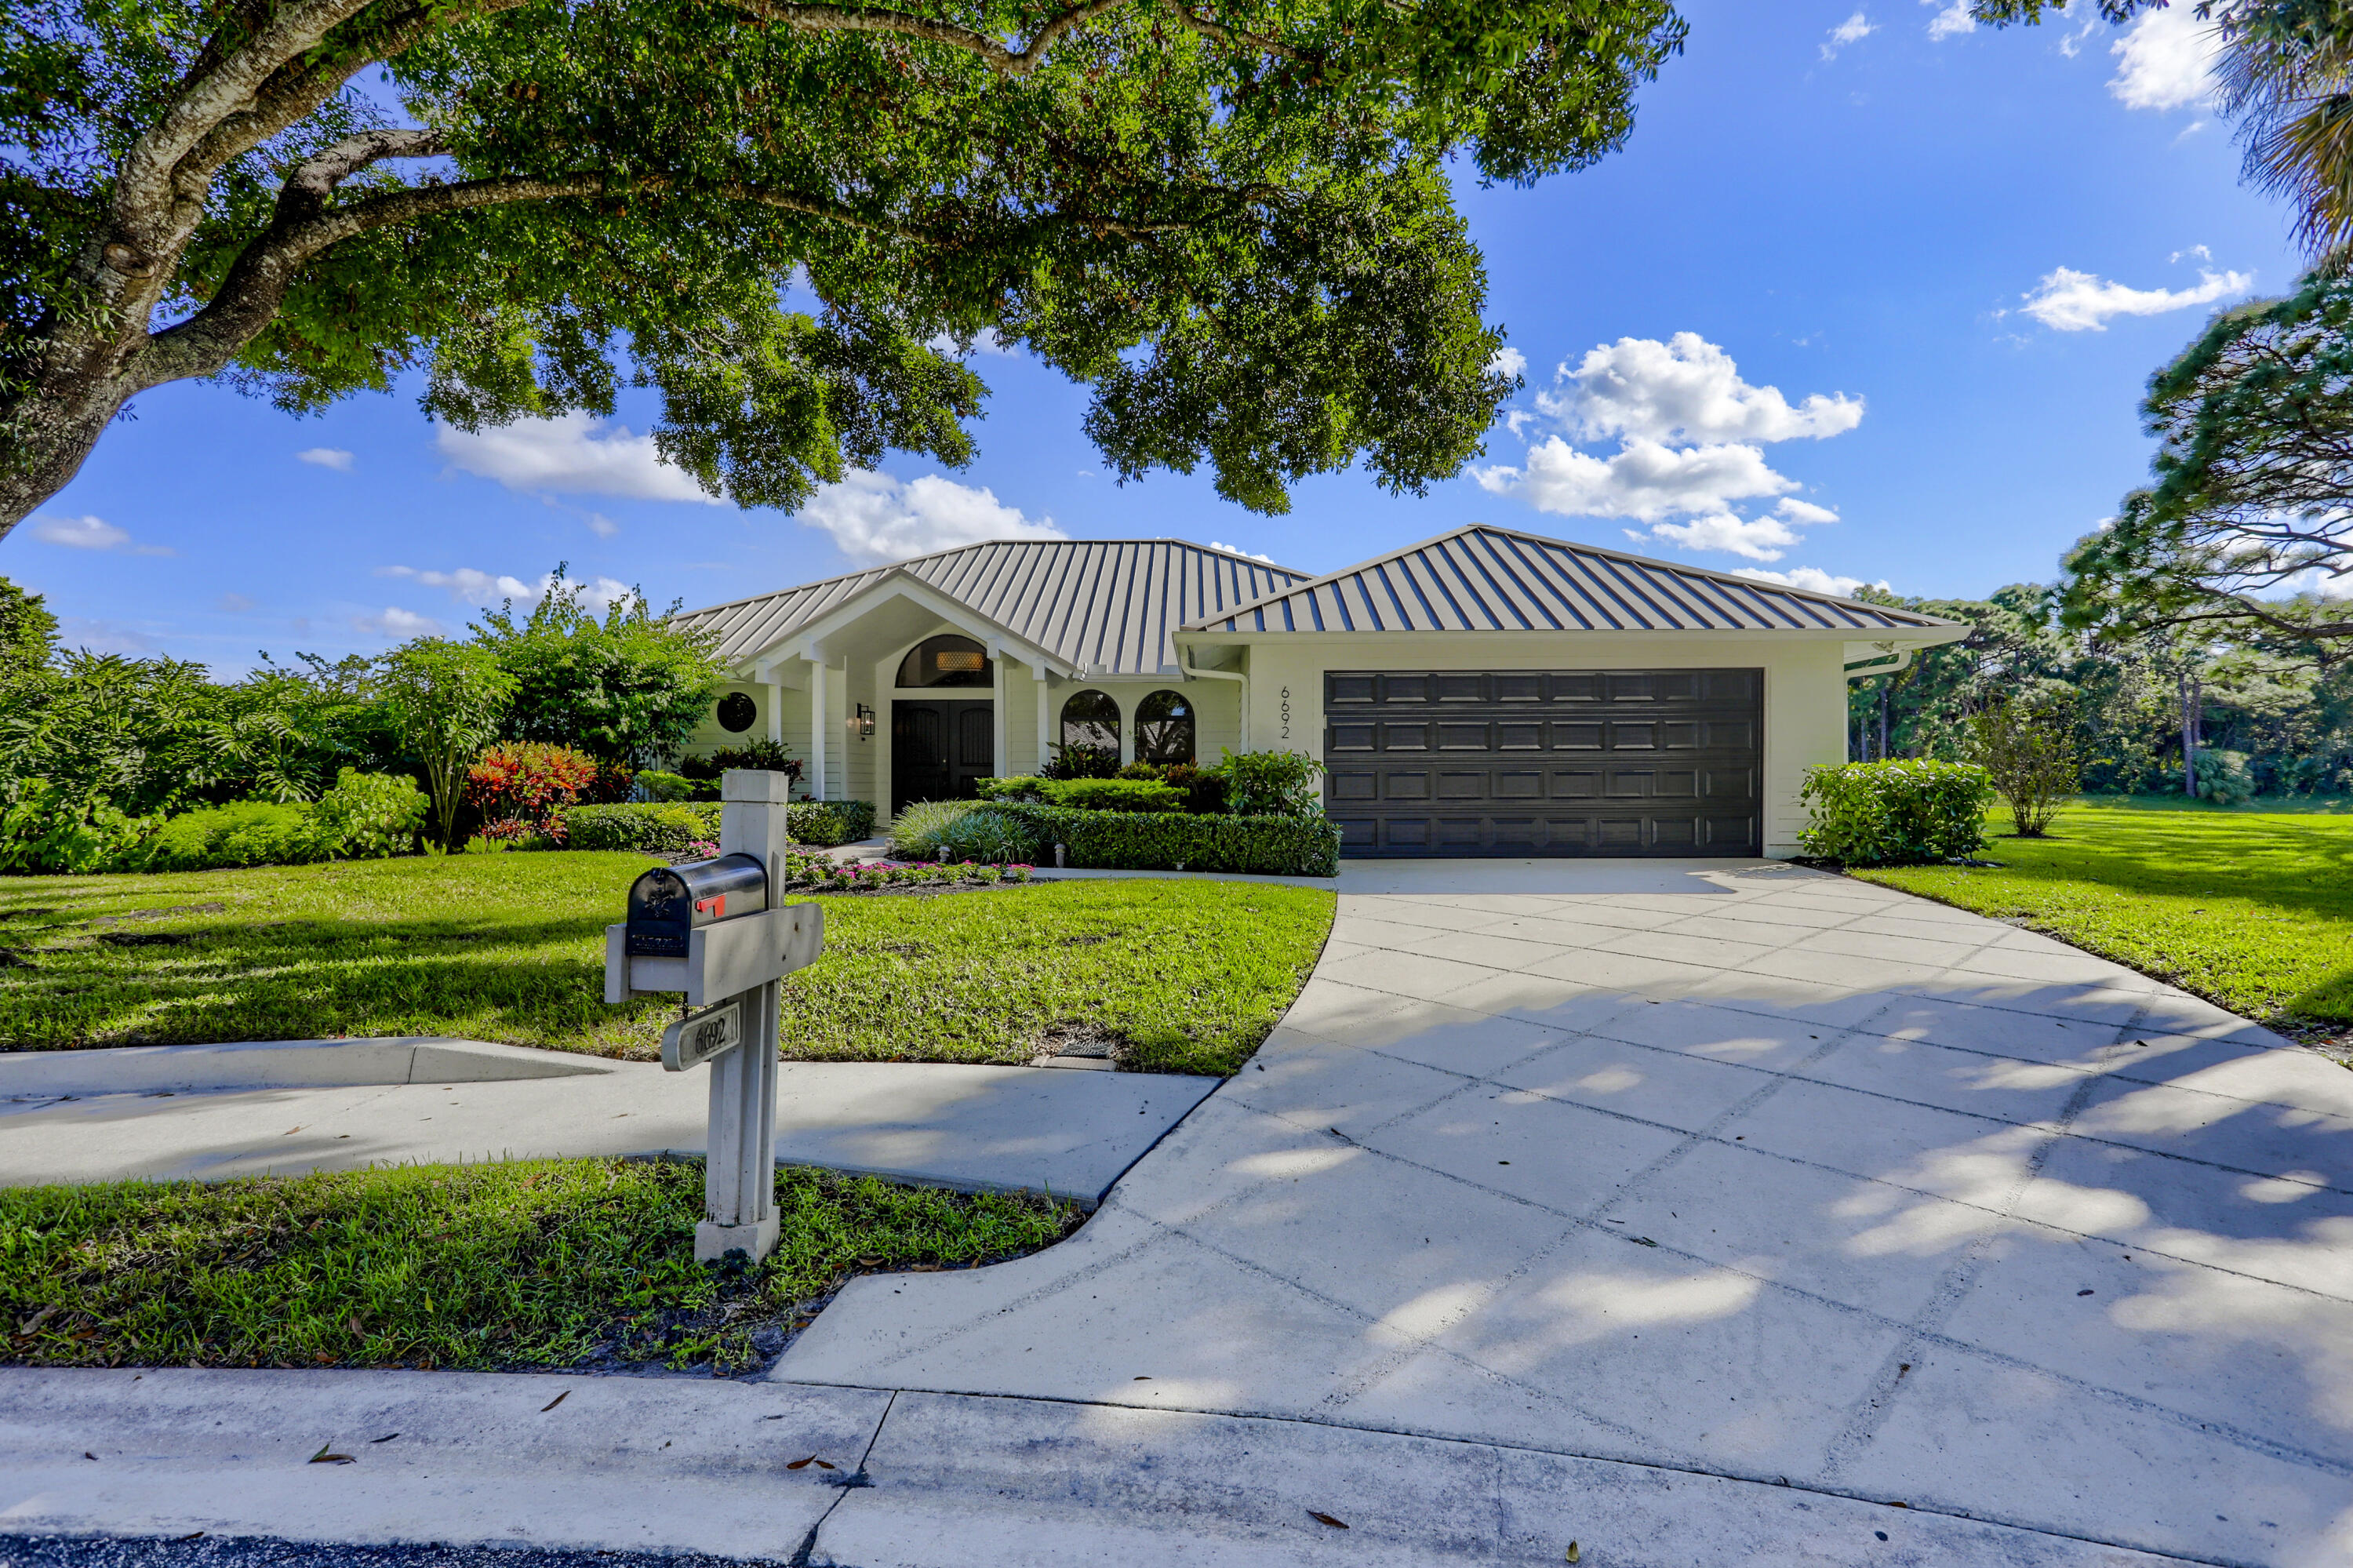 Meticulously maintained! Charming home situated on an oversize cul-de-sac lot, showcasing 3 bedroom 2 bath split floor plan, dark wood floors throughout, custom closets, walk in pantry, stainless steel appliances, hurricane impact windows & sliding glass doors, metal roof, AC replaced 2020, newer hot water heater, plantation shutters, screened lanai & heated pool with private panoramic lake views, lush landscaping, & much more. The owner thought of everything!